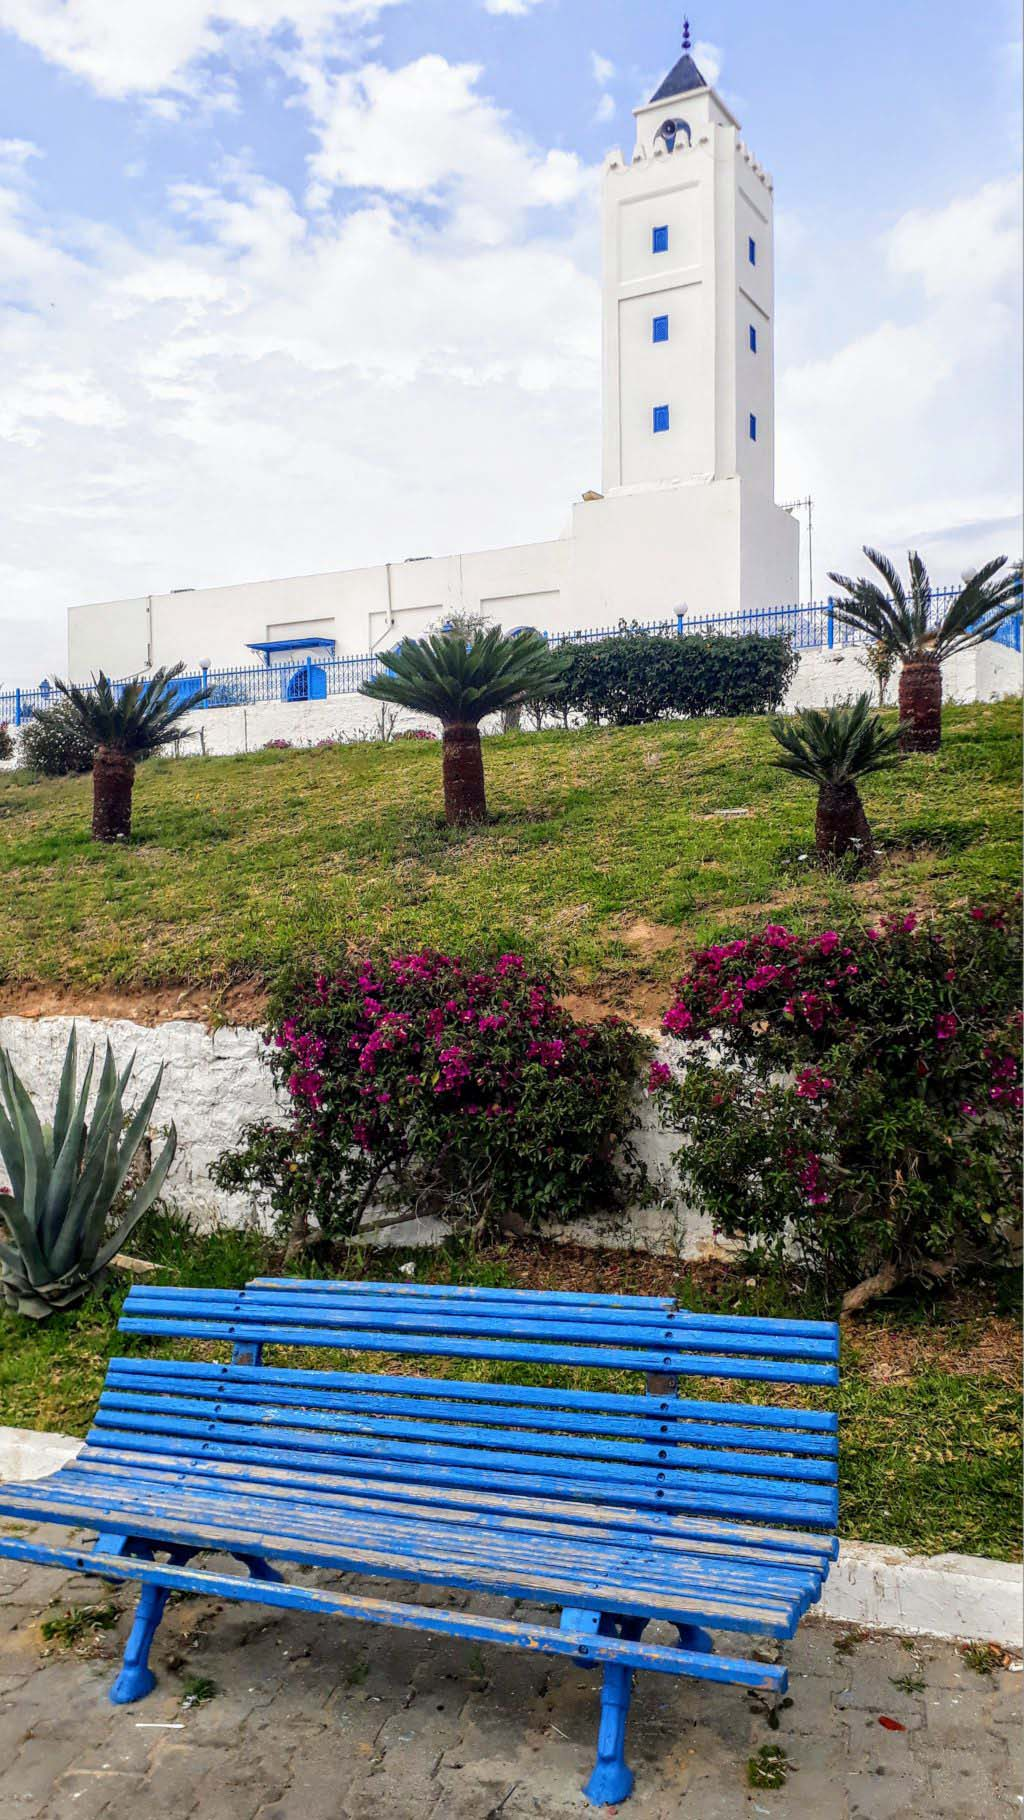 In Sidi Bou Saïd religion has a high priority, the place is considered sacred